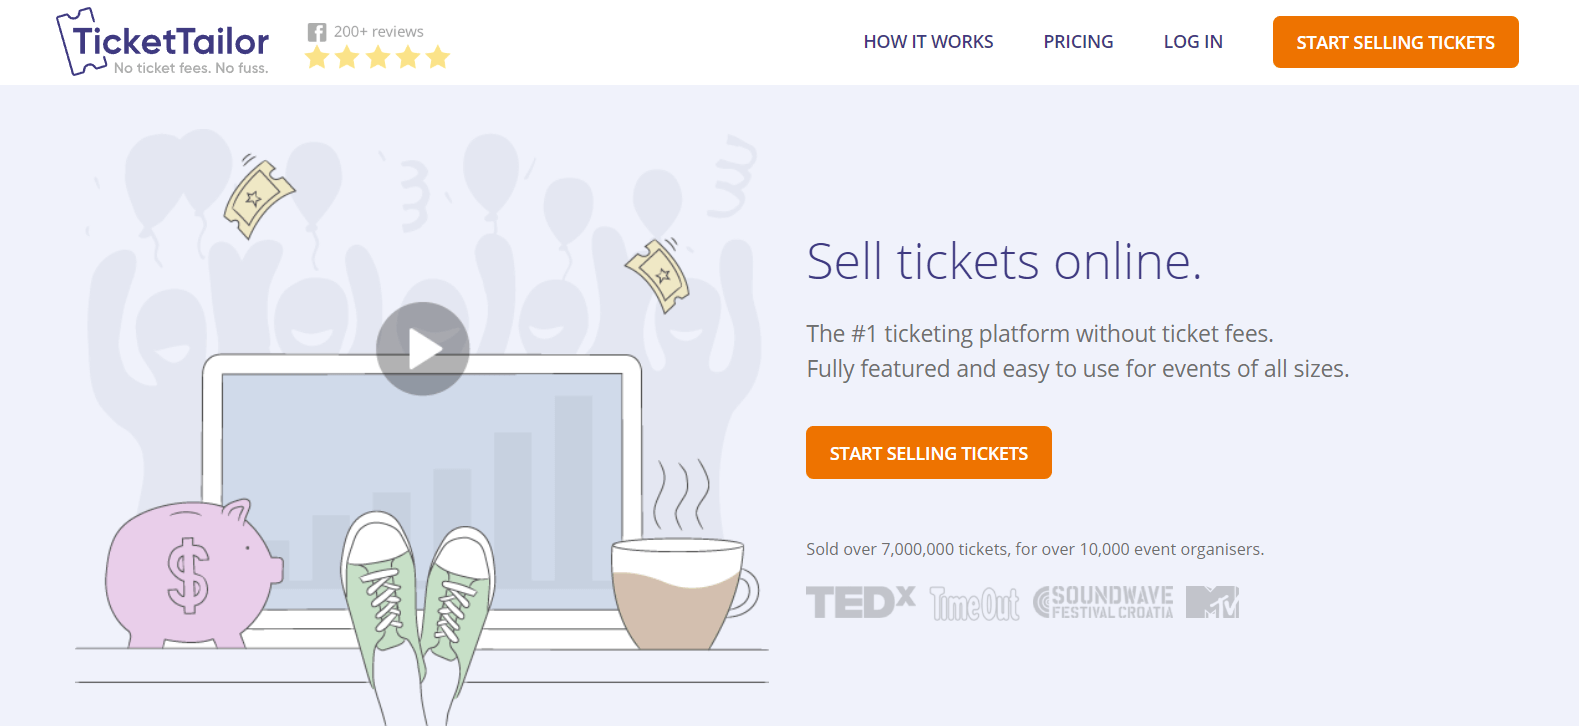 The TicketTailor website.